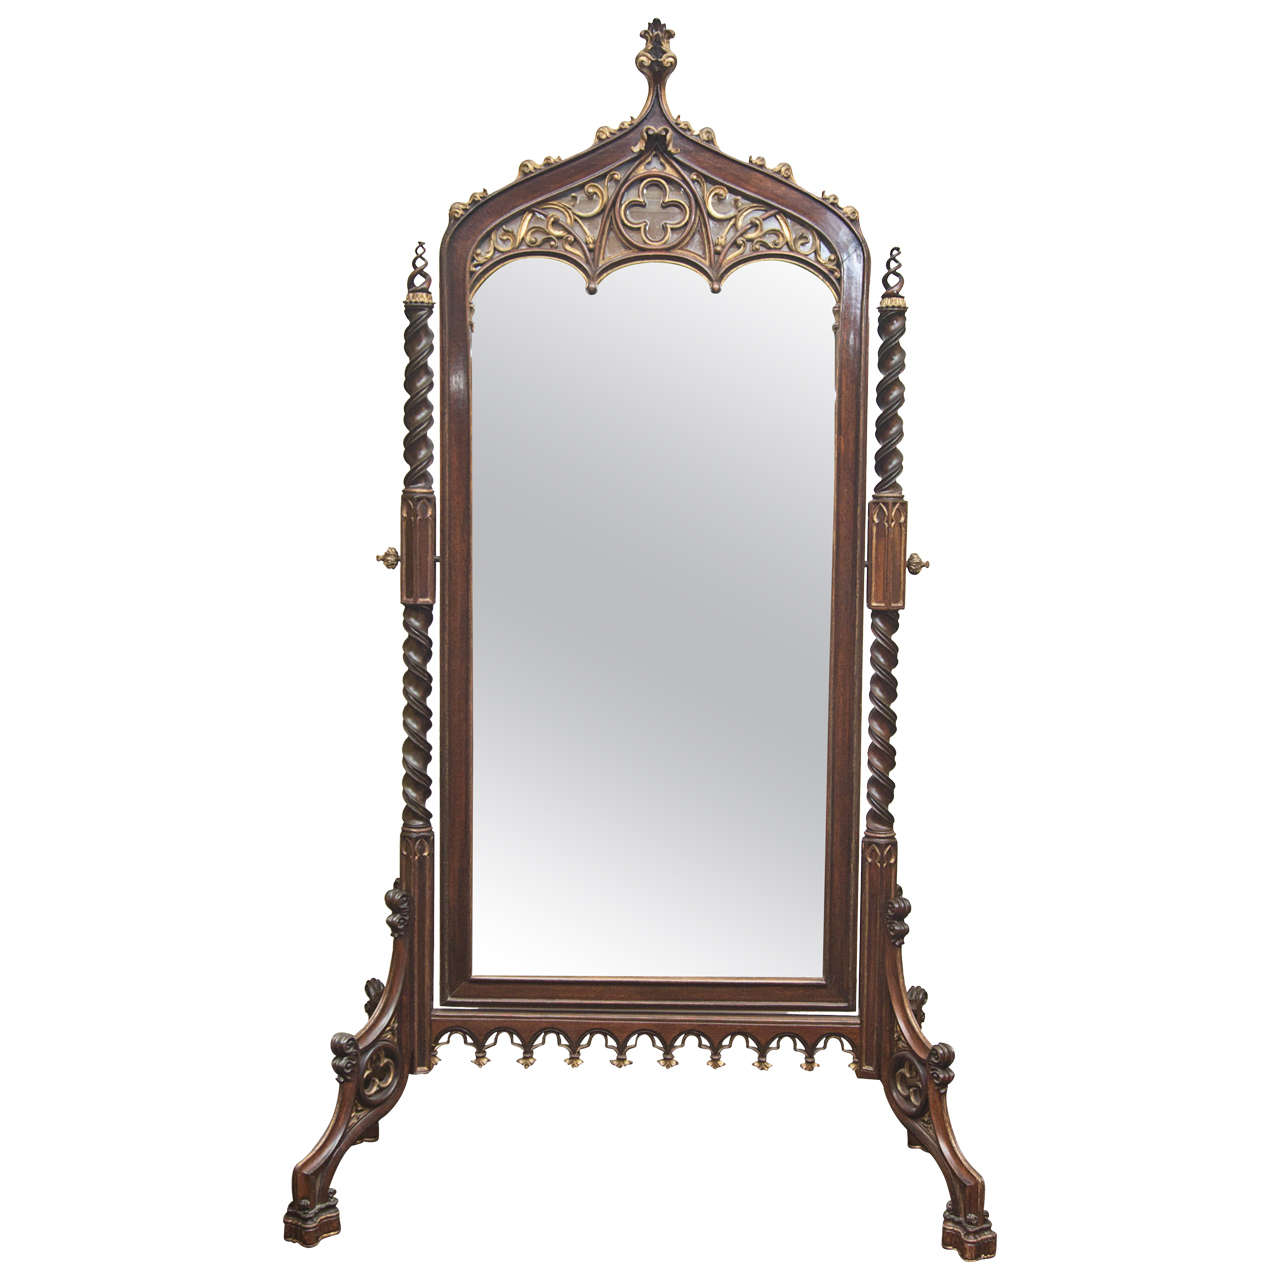 Arched gilt mirror at 1stdibs - An Exceptionally Fine 19th Century Neo Gothic Cheval Mirror 1